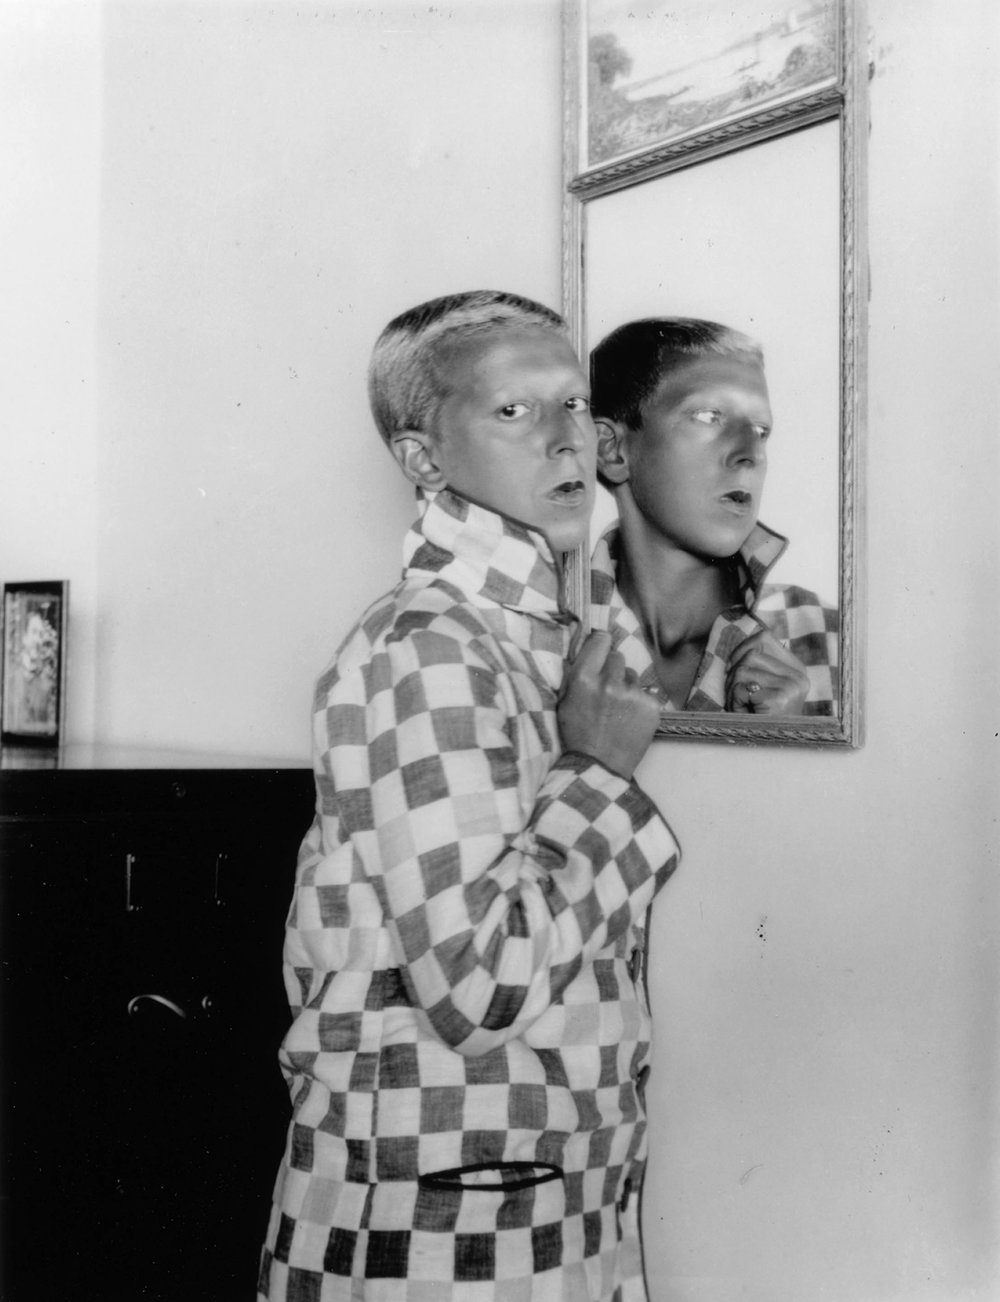 Claude Cahun, Self-Portrait, 1928